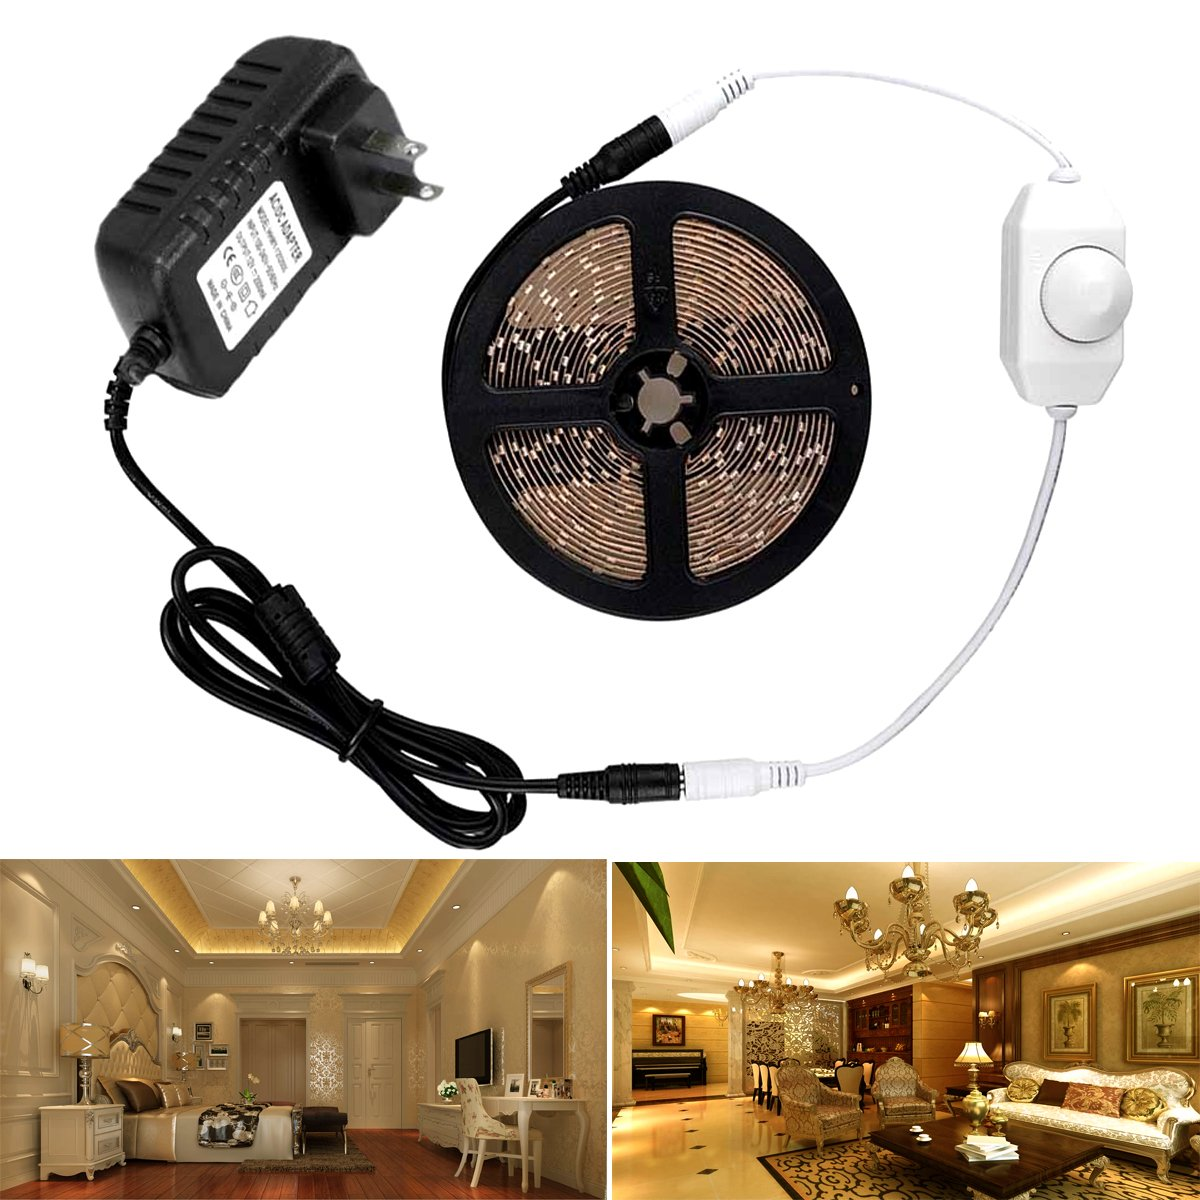 Autai Dimmable LED Light Strip Kit with Power Supply and Dimmer, 300 LEDs 2835 16.4ft 12V LED Ribbon Non-waterproof Warm White Lighting Strips LED Tape for Kitchens Cabinets Bedrooms Crown Molding